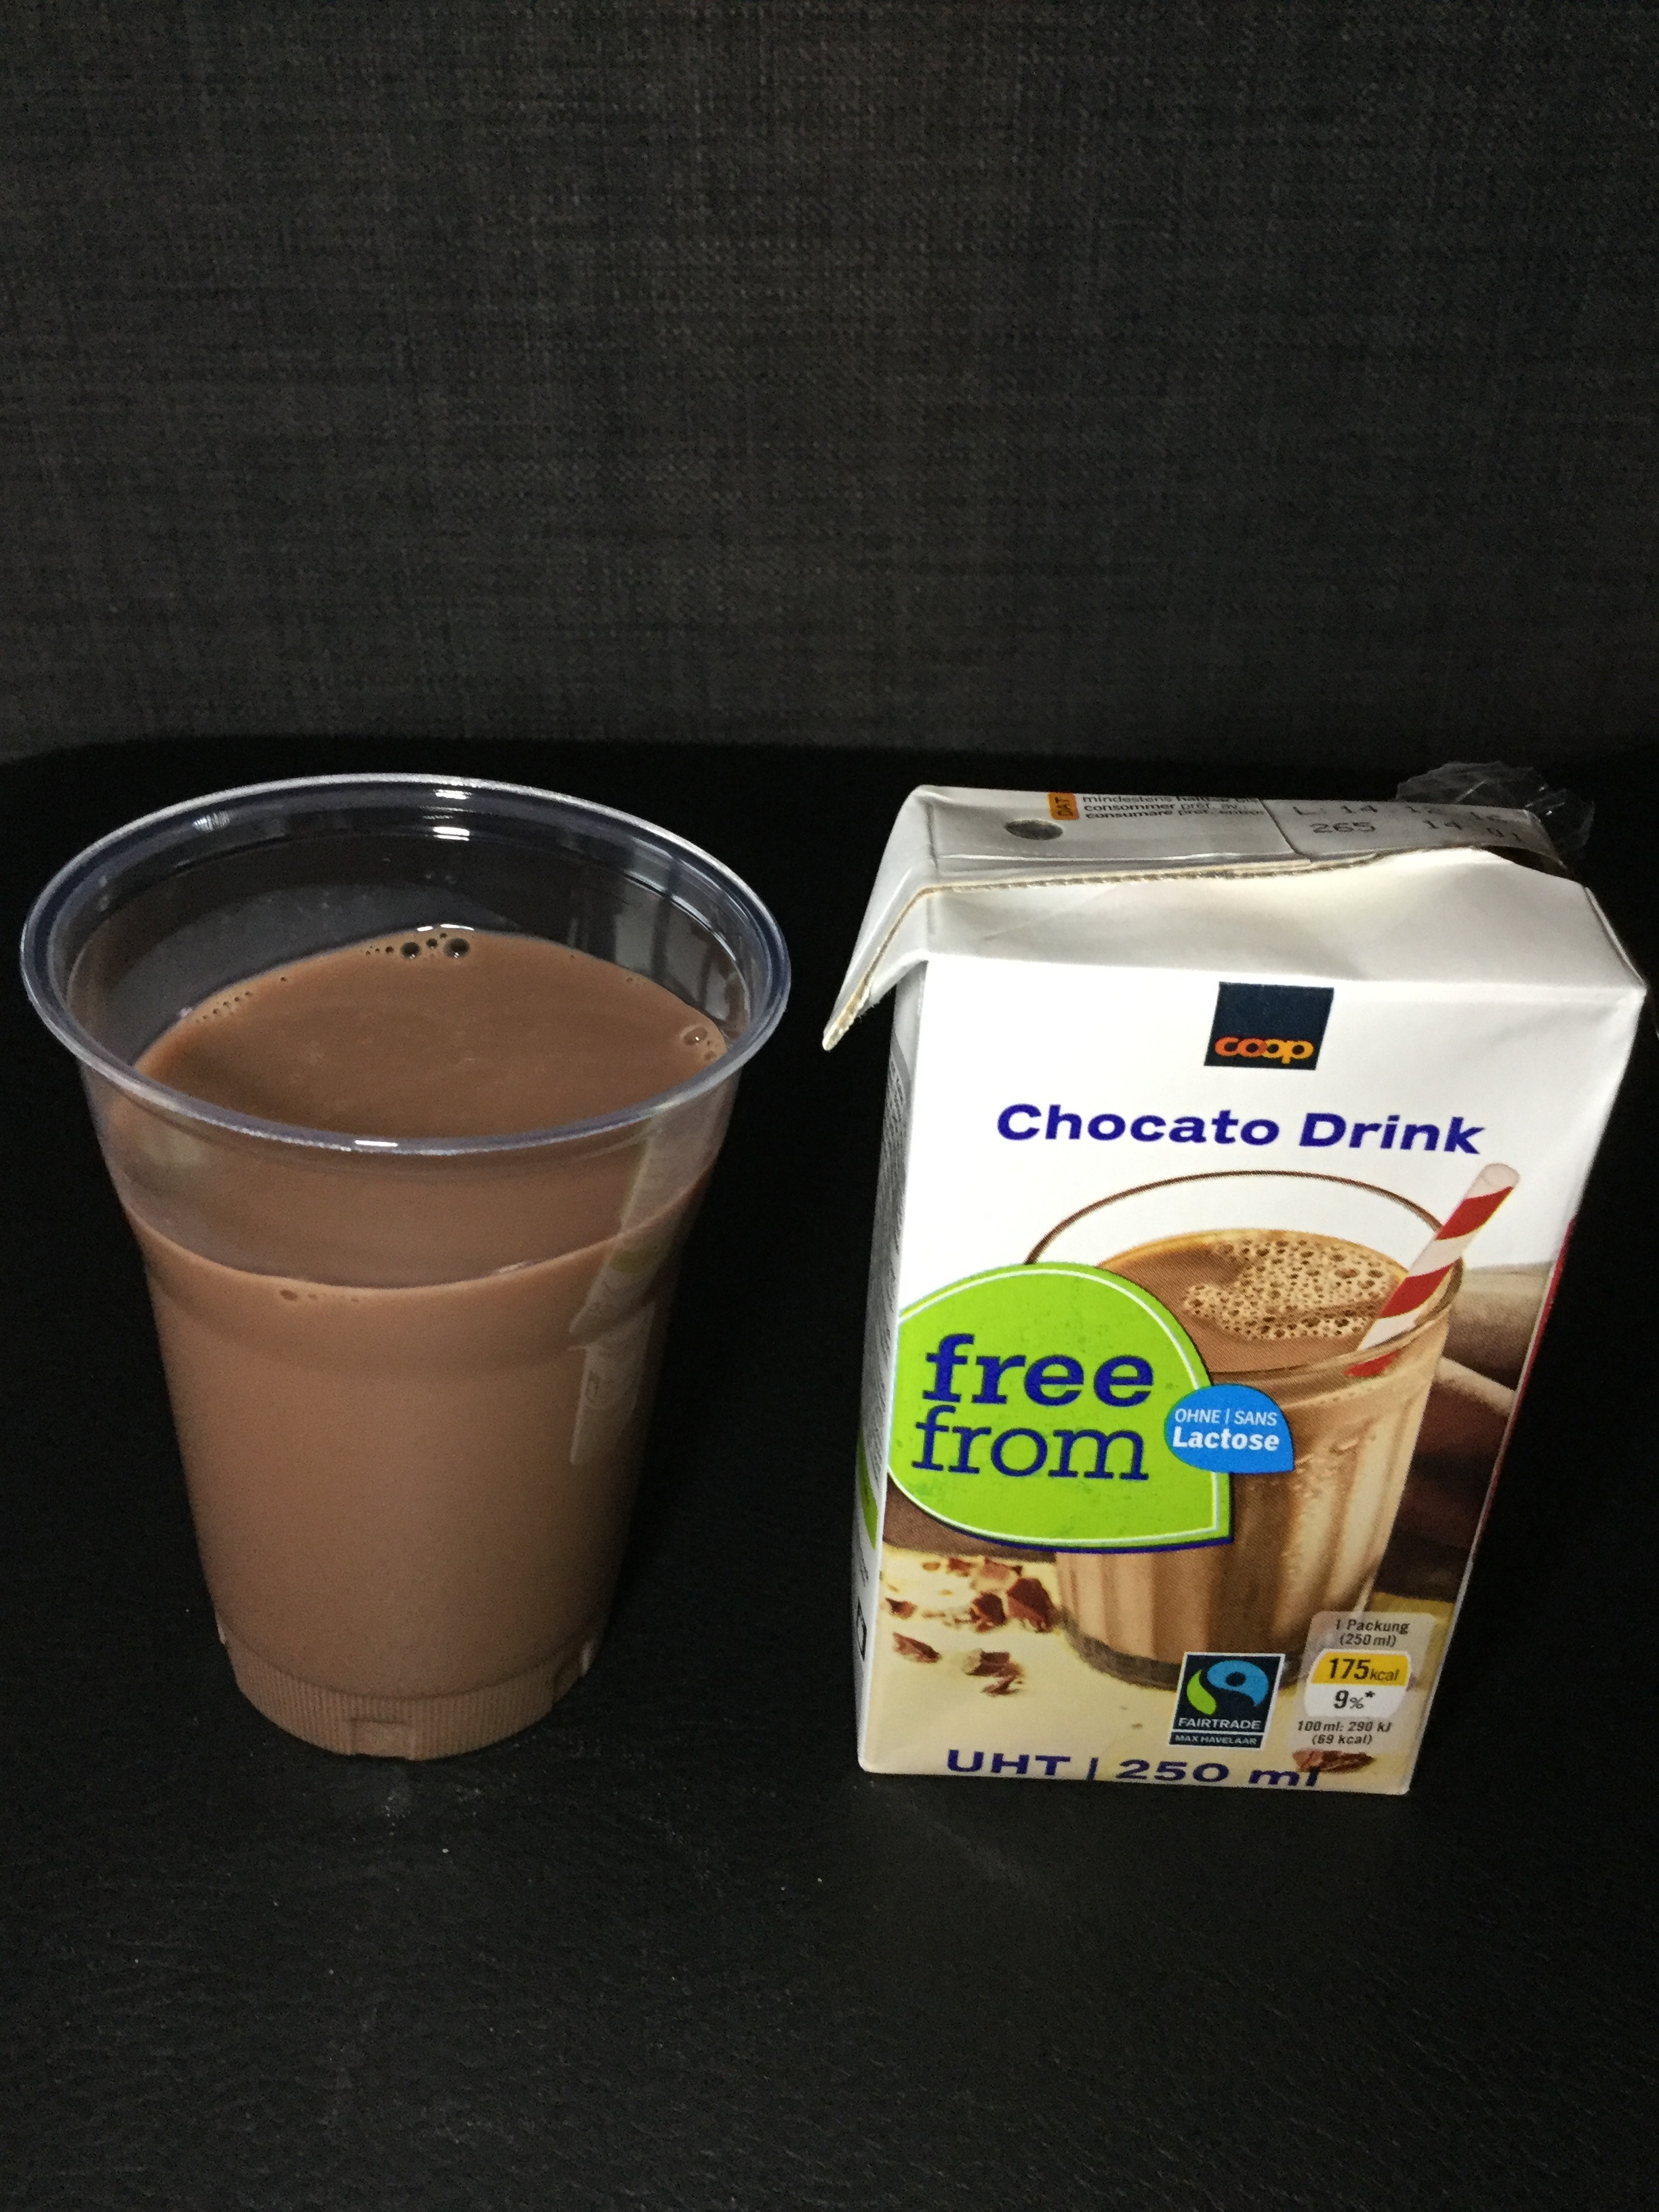 Coop Chocato Drink 0.2 Percent Fat Cup